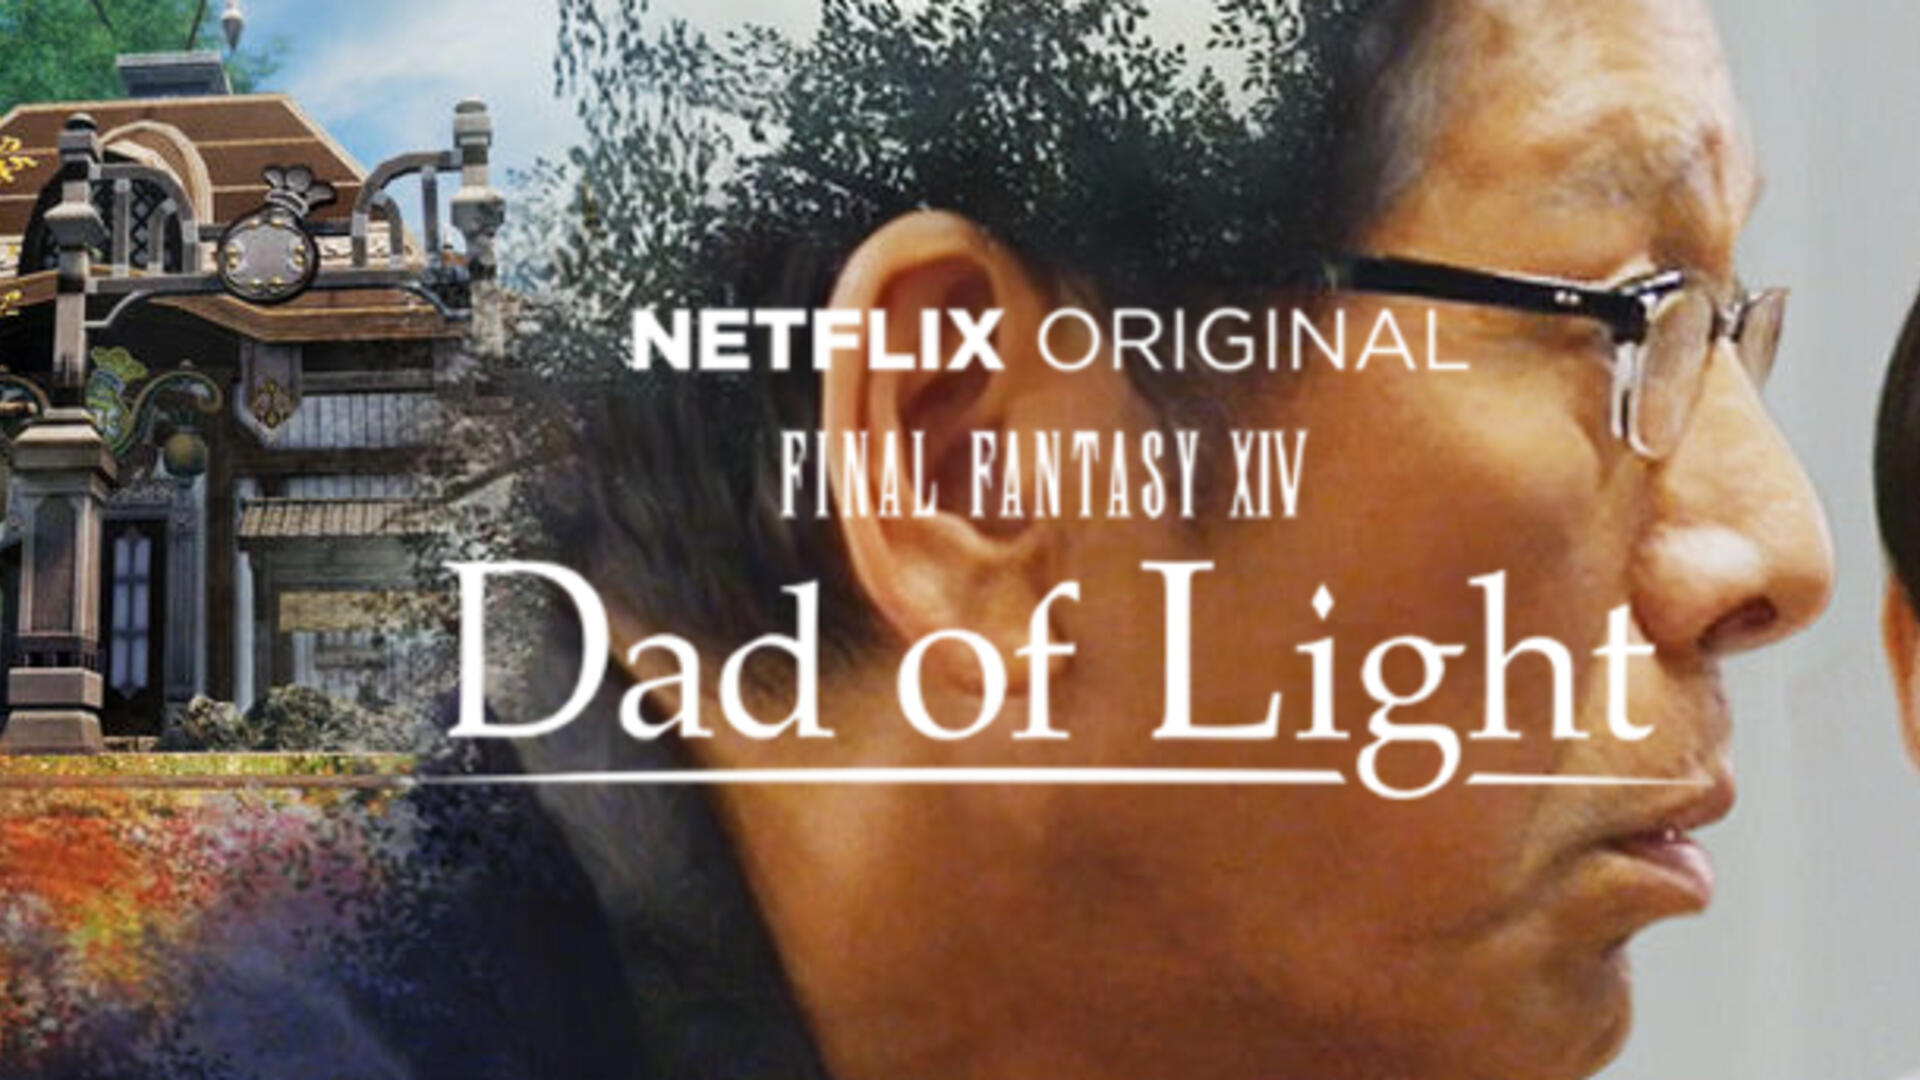 The Netflix Drama Final Fantasy XIV: Daddy of Light Changed Its Name to Dad of Light, World Loses Interest